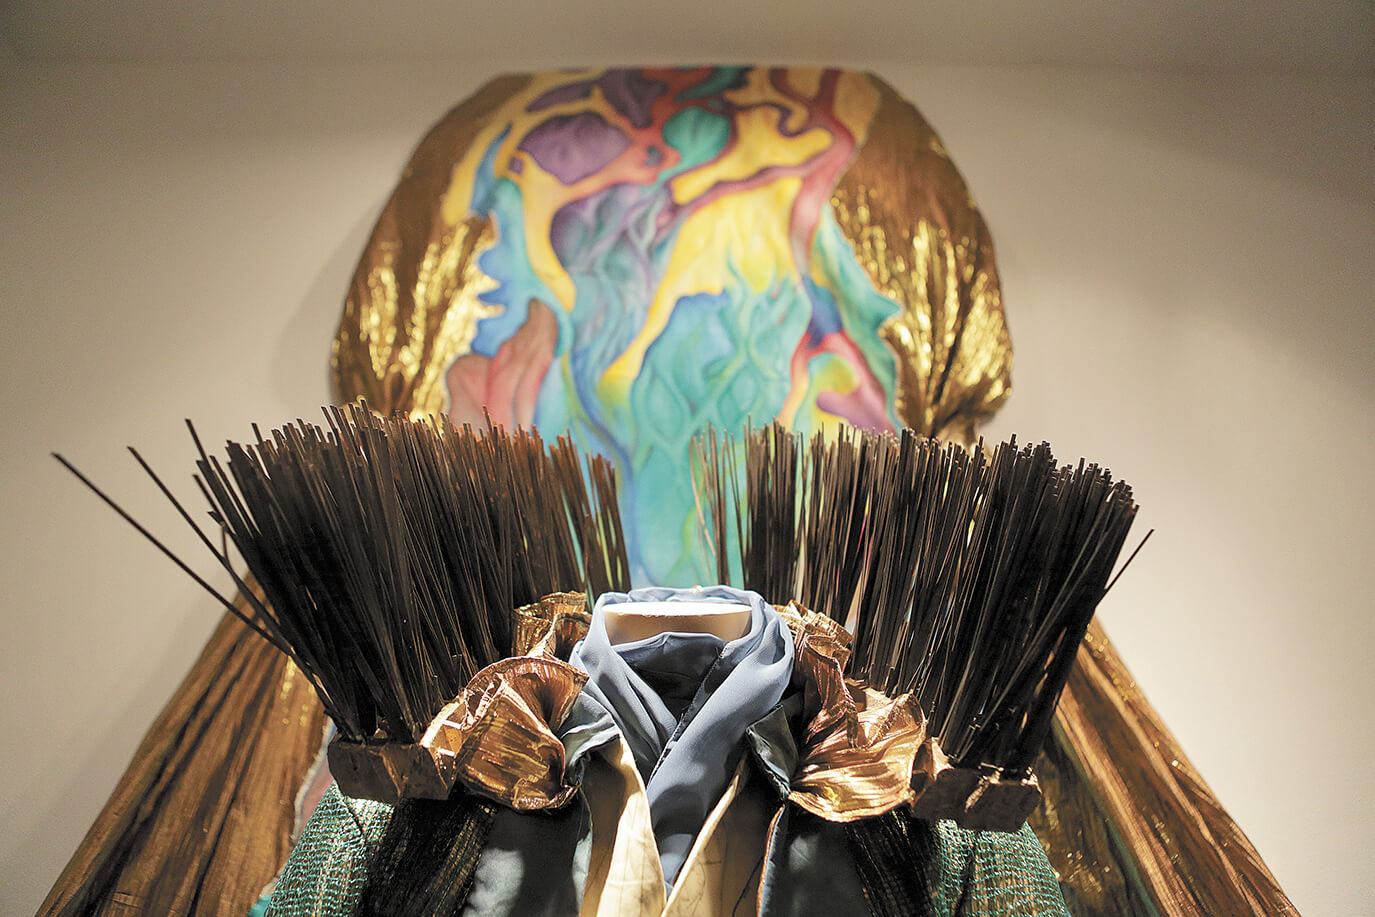 Group effort puts MMoA Mardi Gras over the top